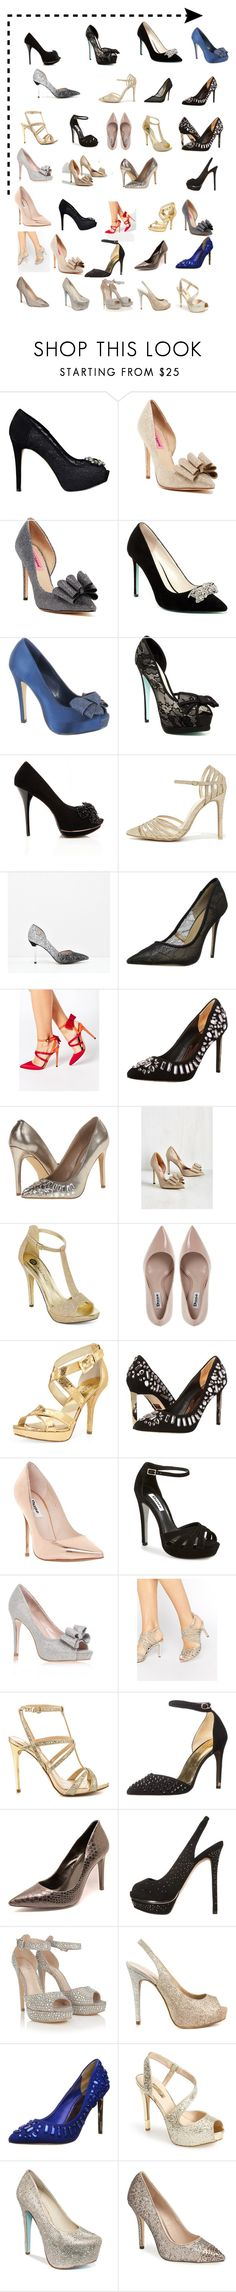 """""""Shoes❤️"""" by fofitta ❤ liked on Polyvore featuring GUESS, Betsey Johnson, Menbur, Anne Michelle, CHARLES & KEITH, BCBGMAXAZRIA, ASOS, Ted Baker, Steve Madden and Michael Antonio"""